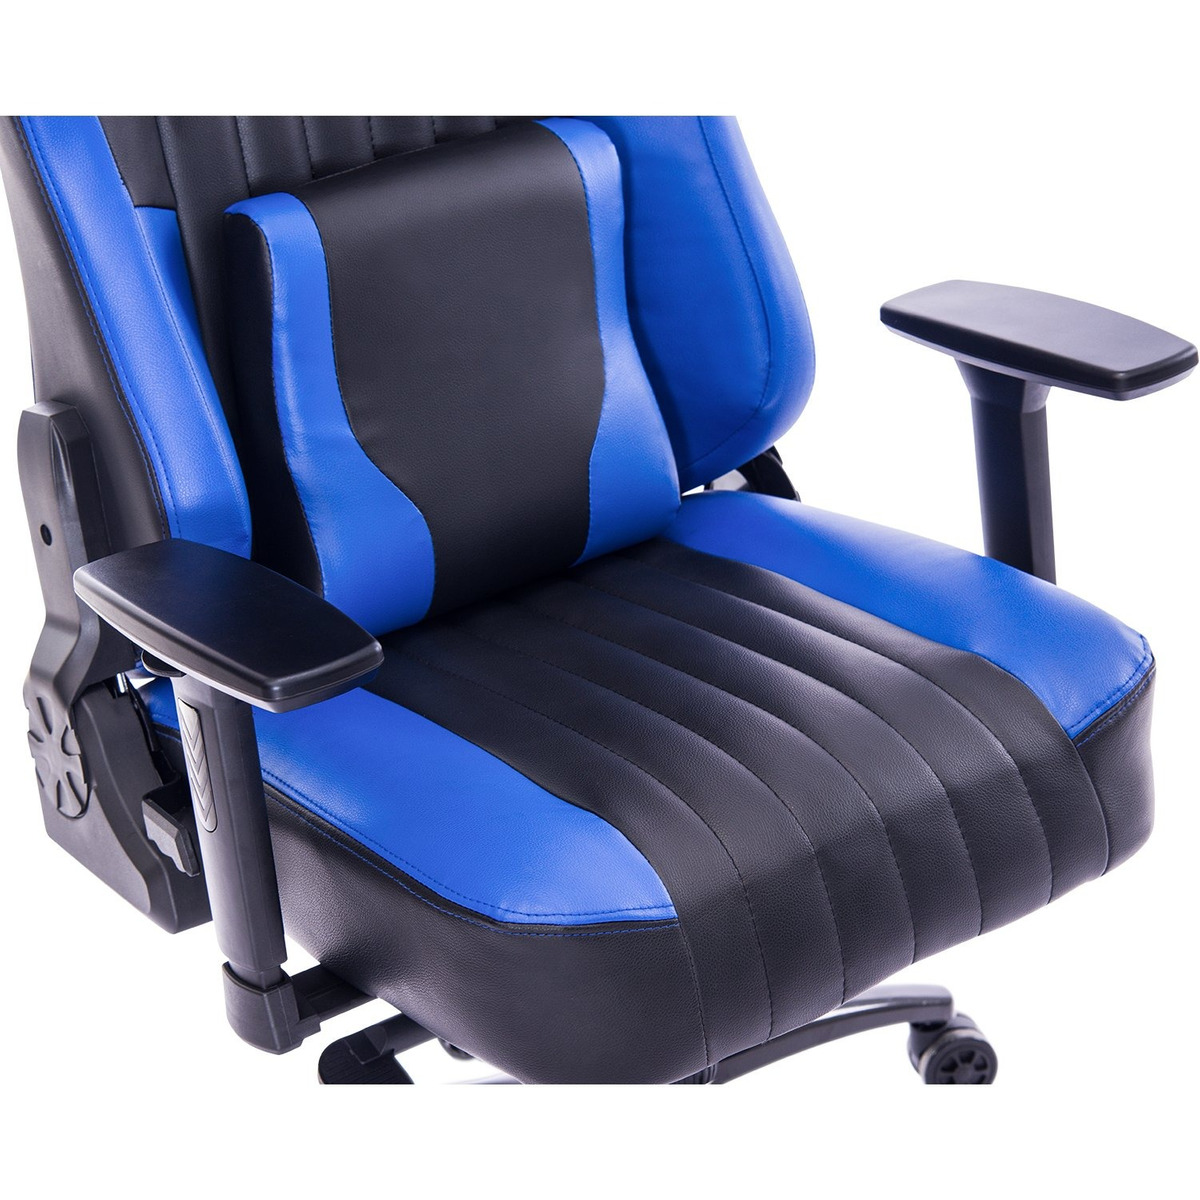 Adjustable Tilt Back Angle and 3D Arms Ergonomic High-Back Leather Racing Executive Computer Desk Office Chair Metal Base Blue KILLABEE Big and Tall 400lb Memory Foam Gaming Chair